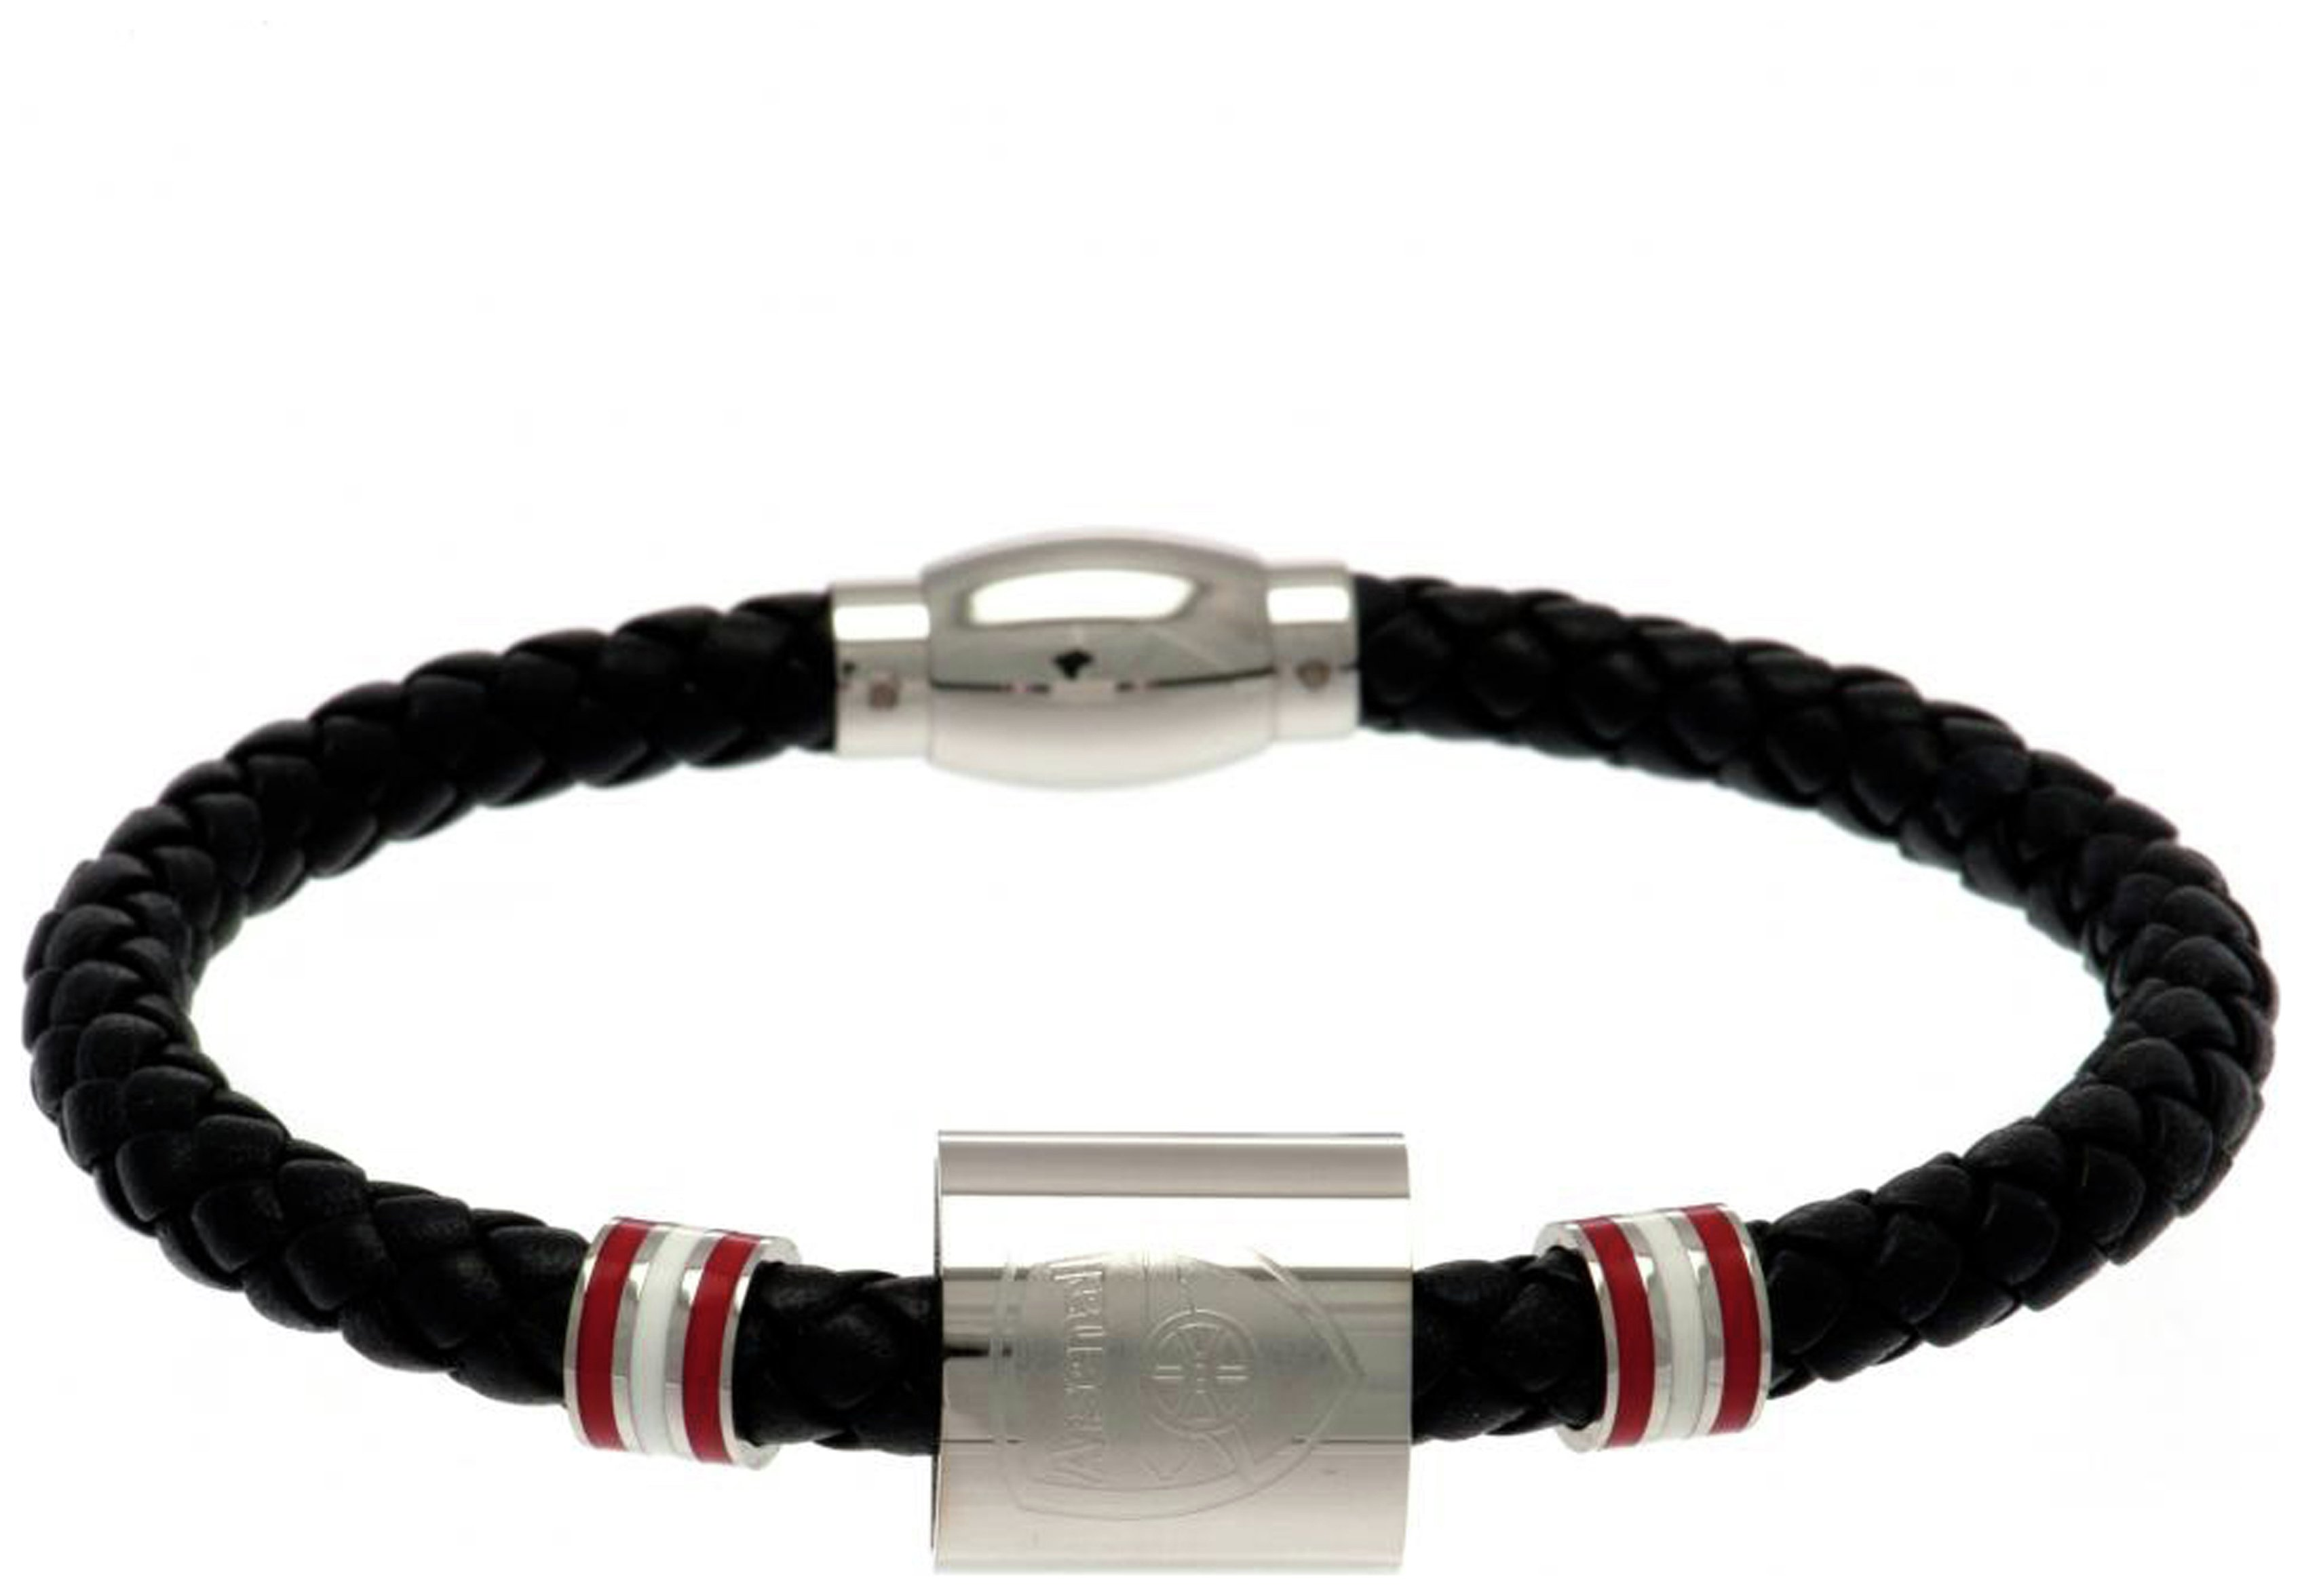 Image of Arsenal FC -Stainless Steel and Leather Stainless Steel and Leather - Bracelet